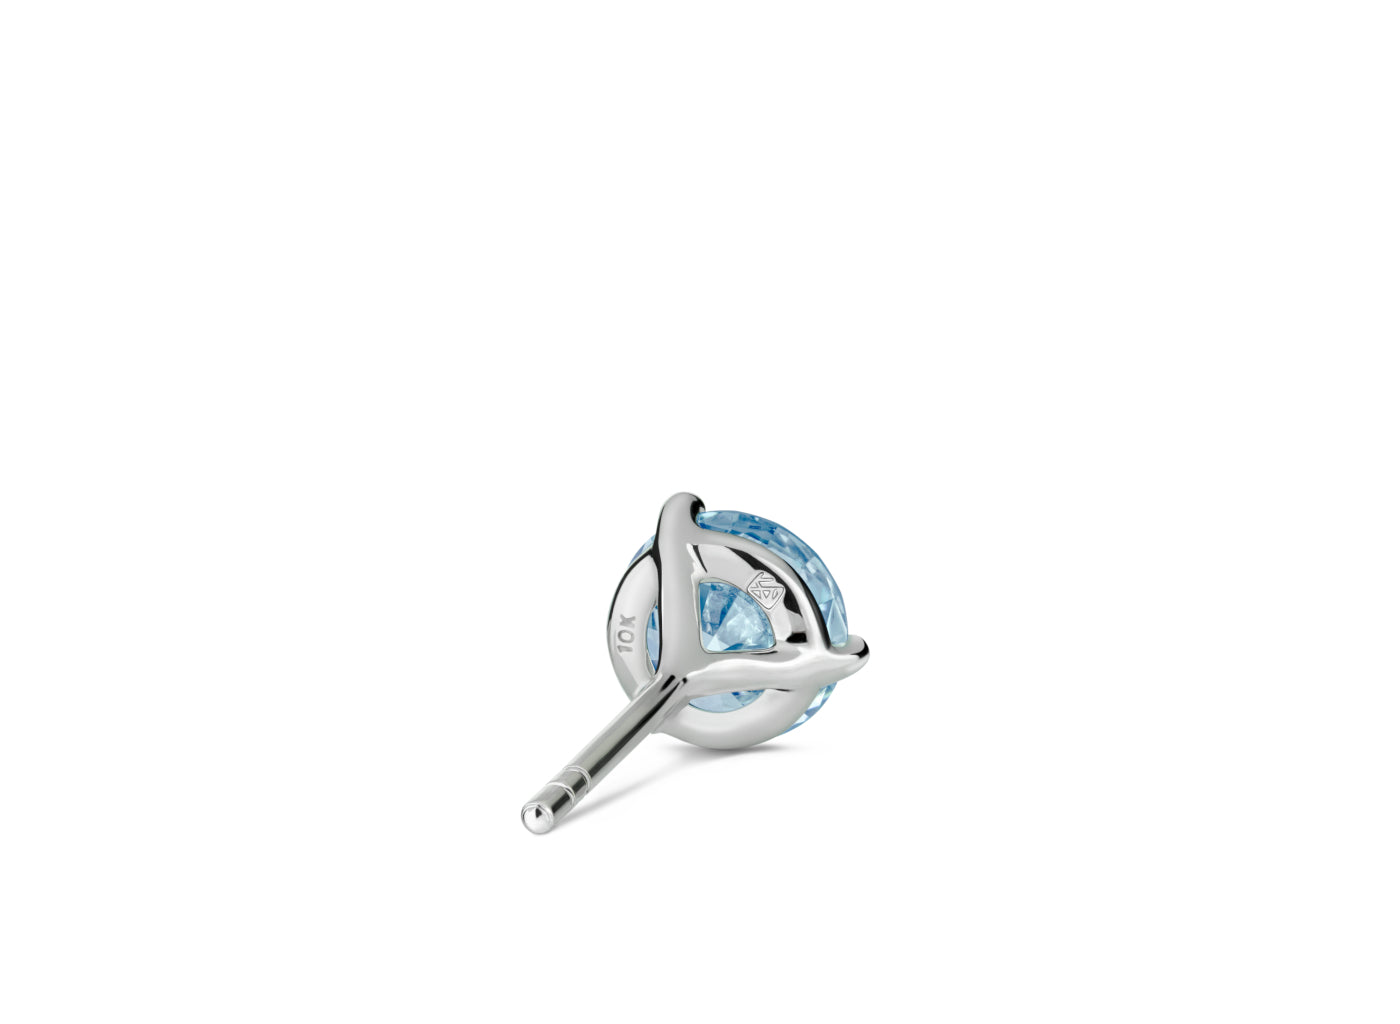 Back view of Solitaire 1 carat stud with blue diamond